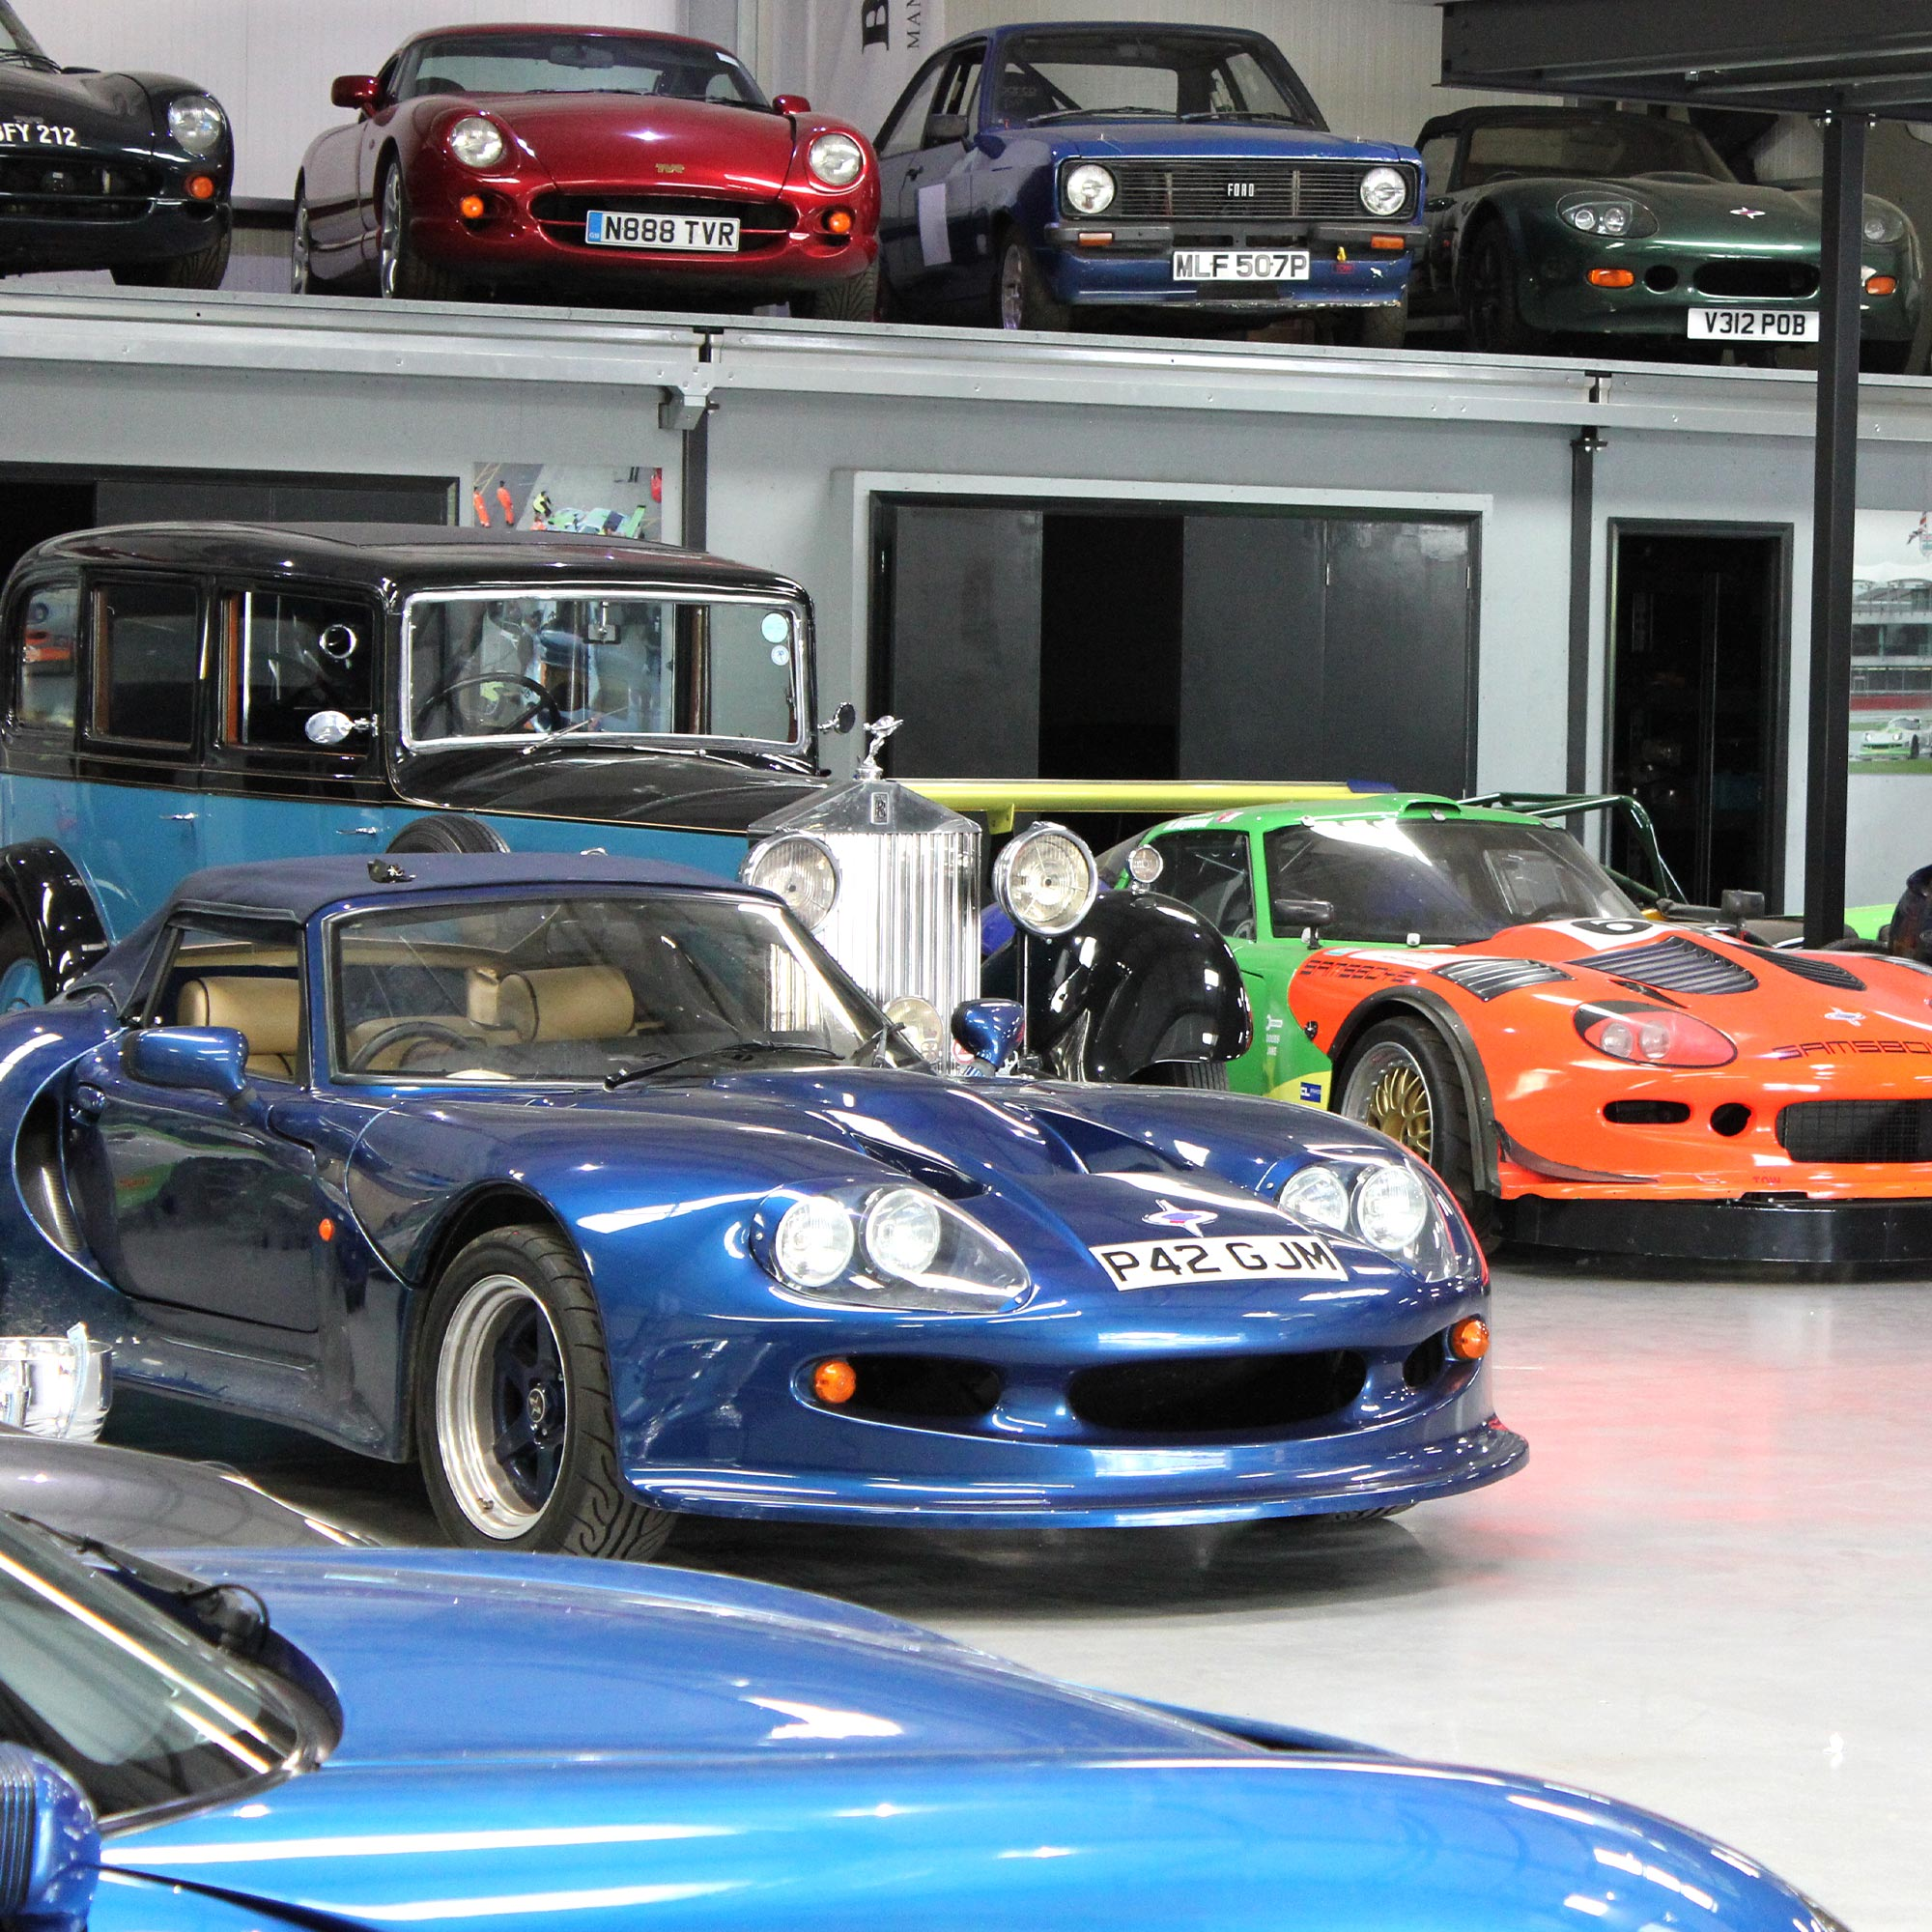 variety of performance and antique luxury cars housed at topcats racing workshop